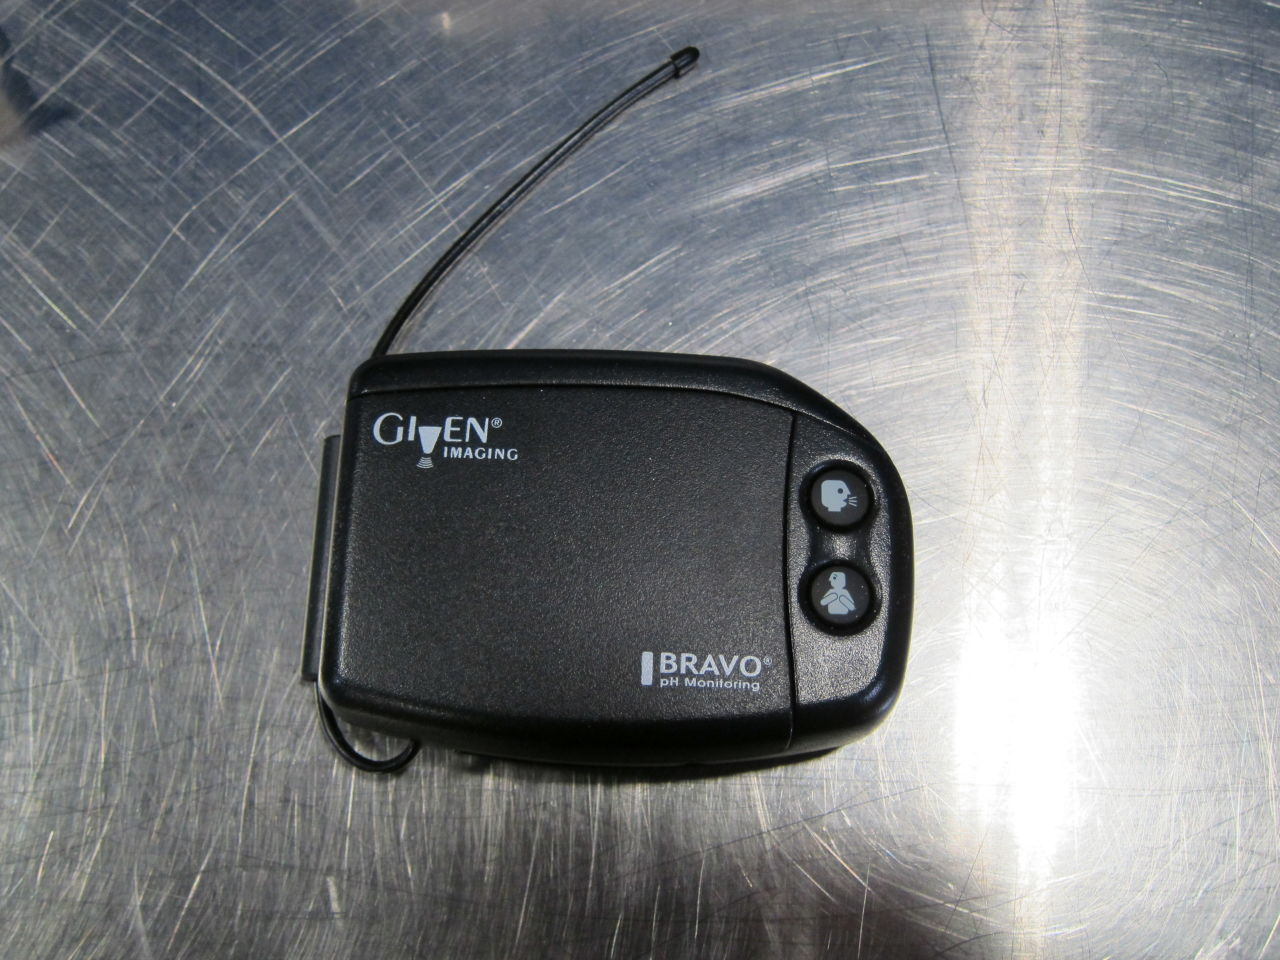 GIVEN IMAGING FGS-0295 Manometry/PH Testing